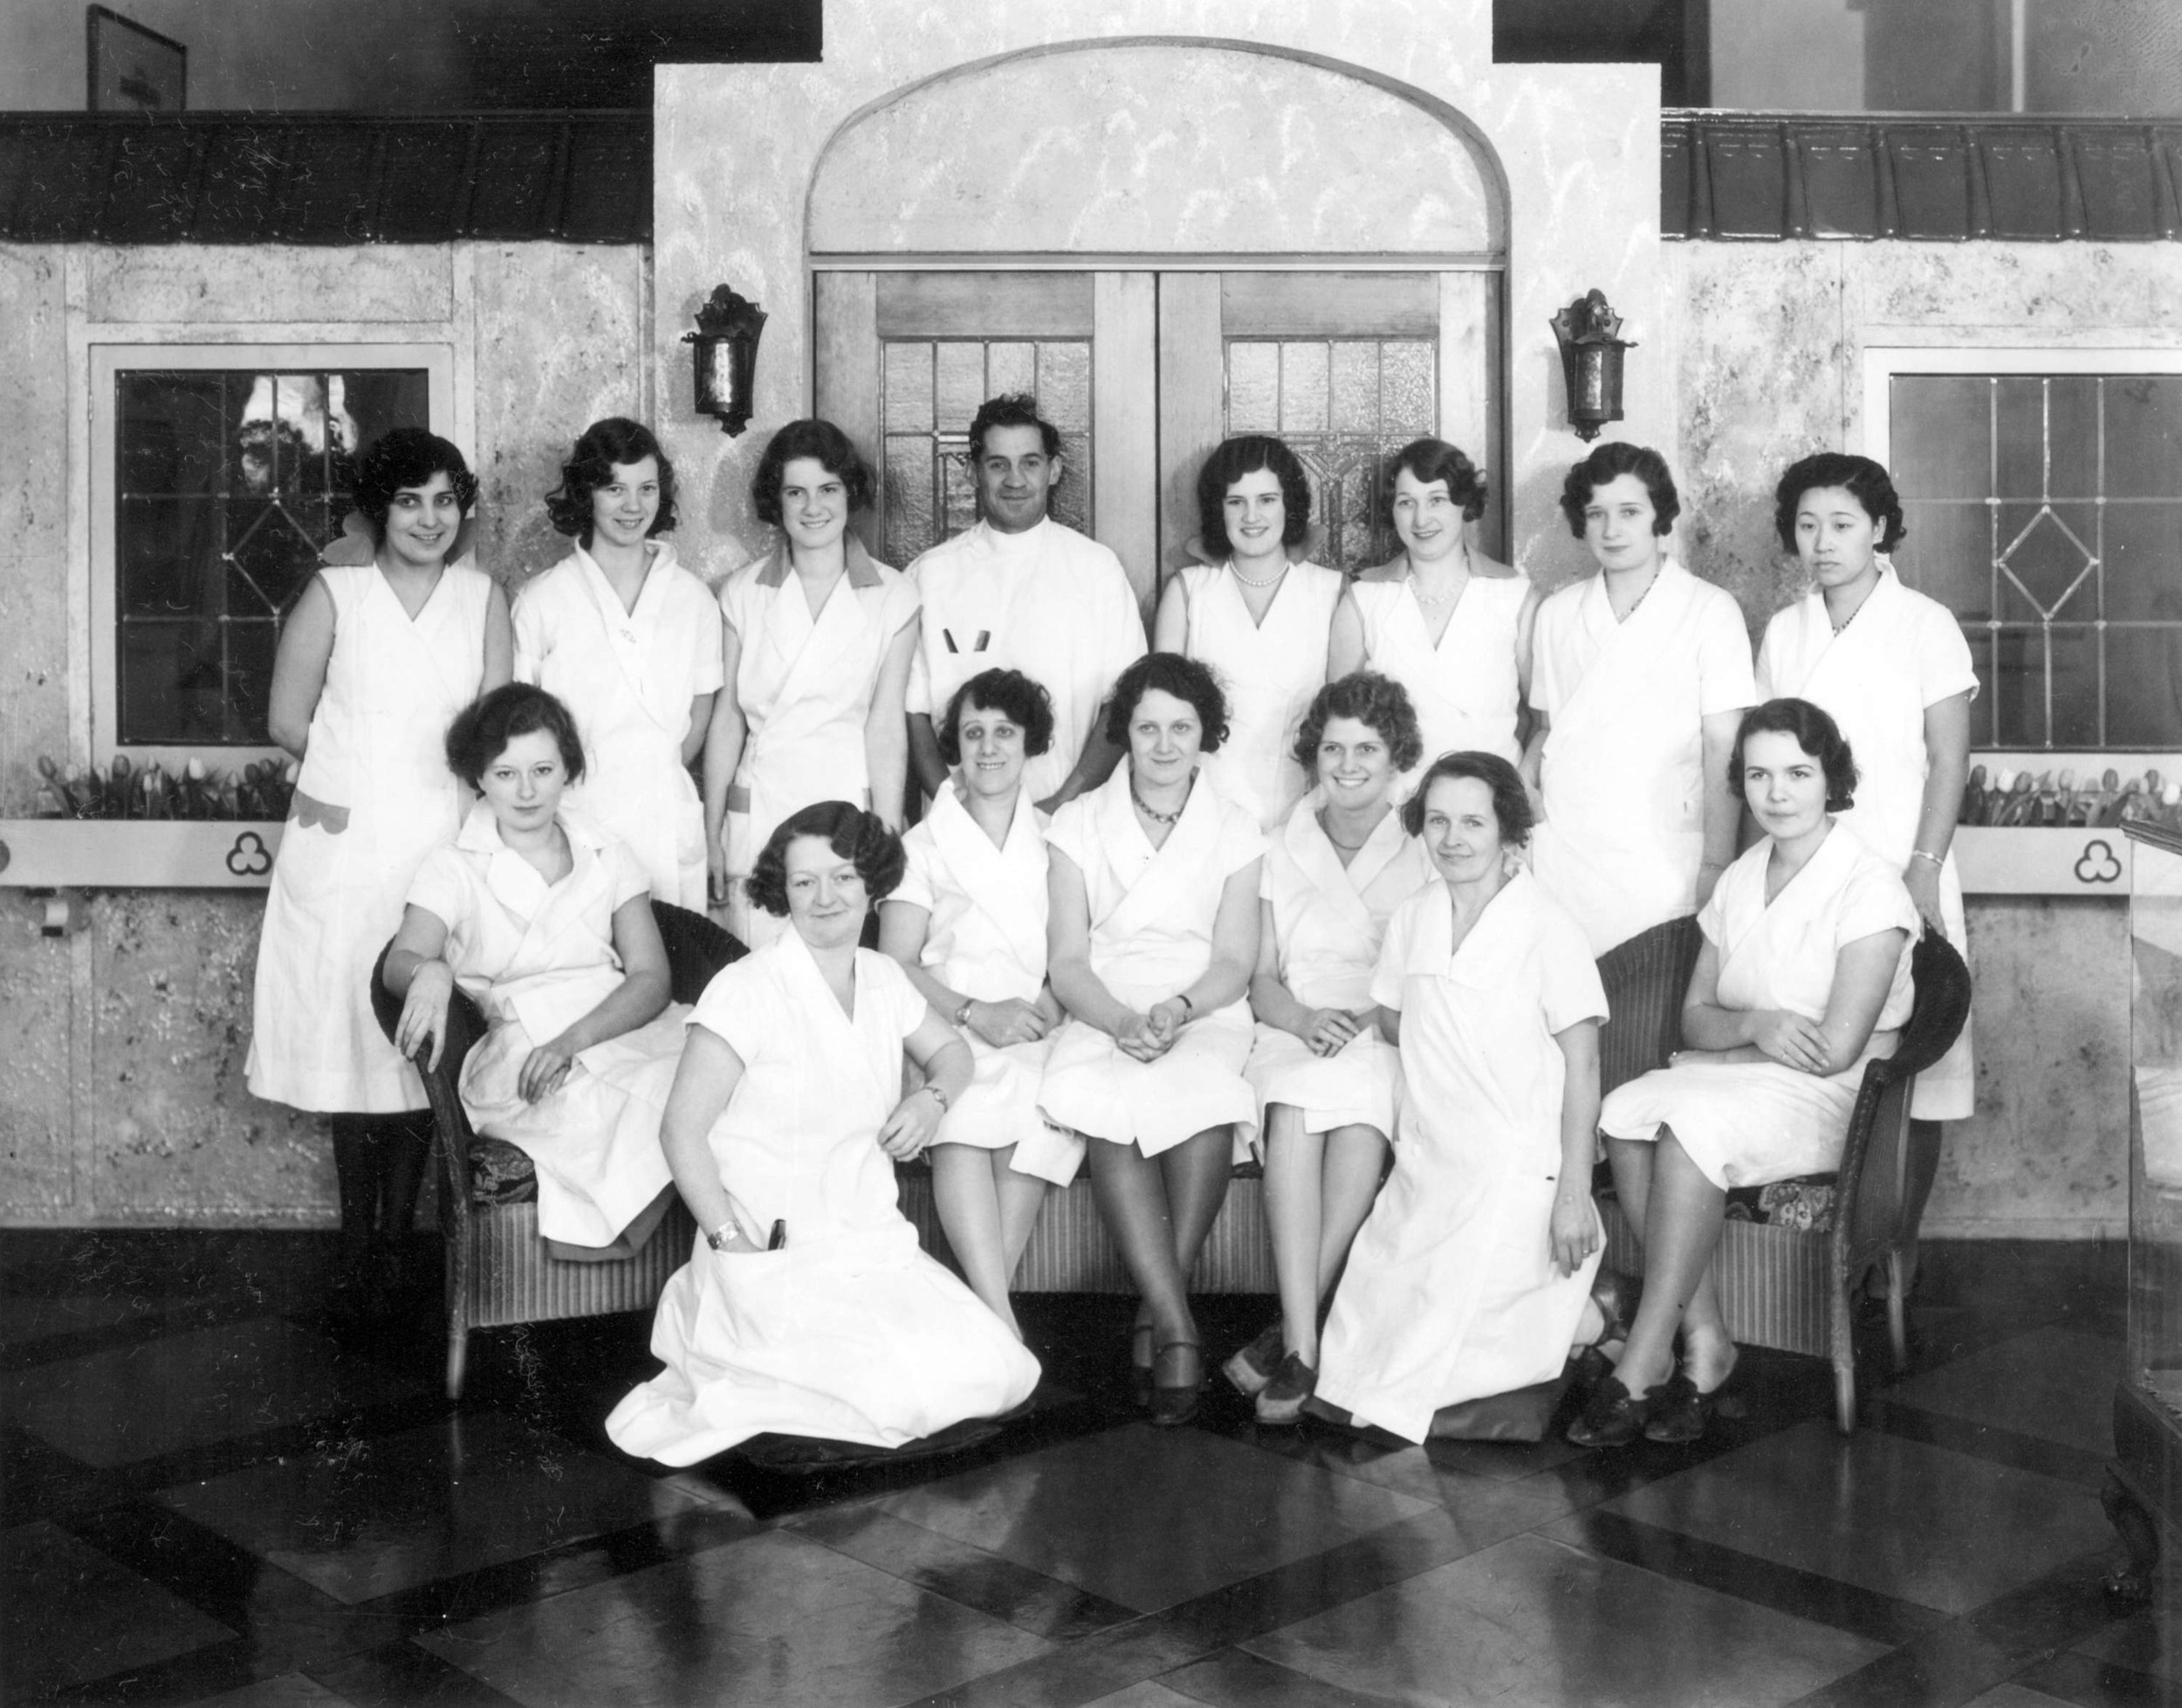 This November 20,1931 photo shows students and instructor's from Maxine's Beauty School. (Stuart Thomson Photo Courtesy of City of Vancouver Archives)